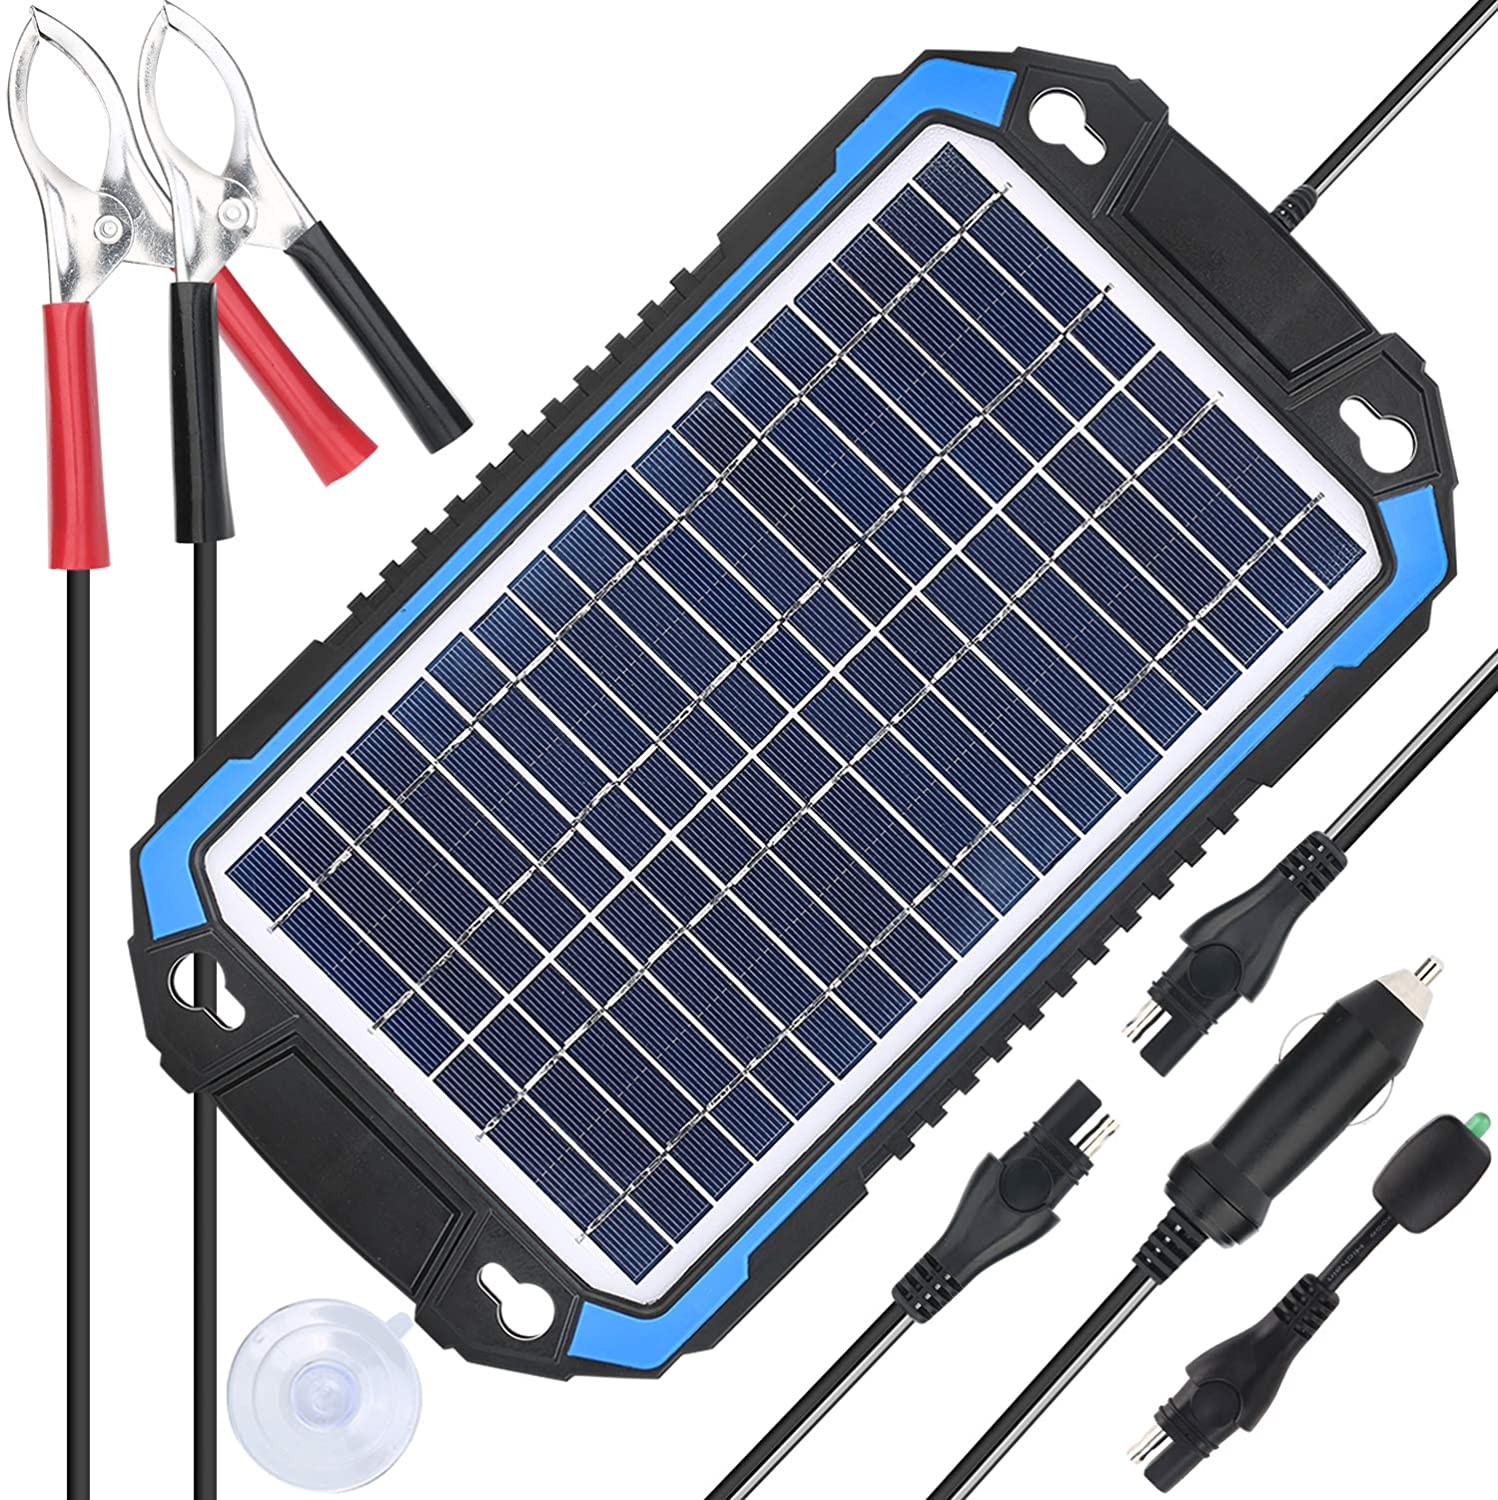 SUNER POWER 12V Solar Car Battery Charger & Maintainer - Portable 6W Solar Panel Trickle Charging Kit for Automotive, Motorcycle, Boat, Marine, RV, ...